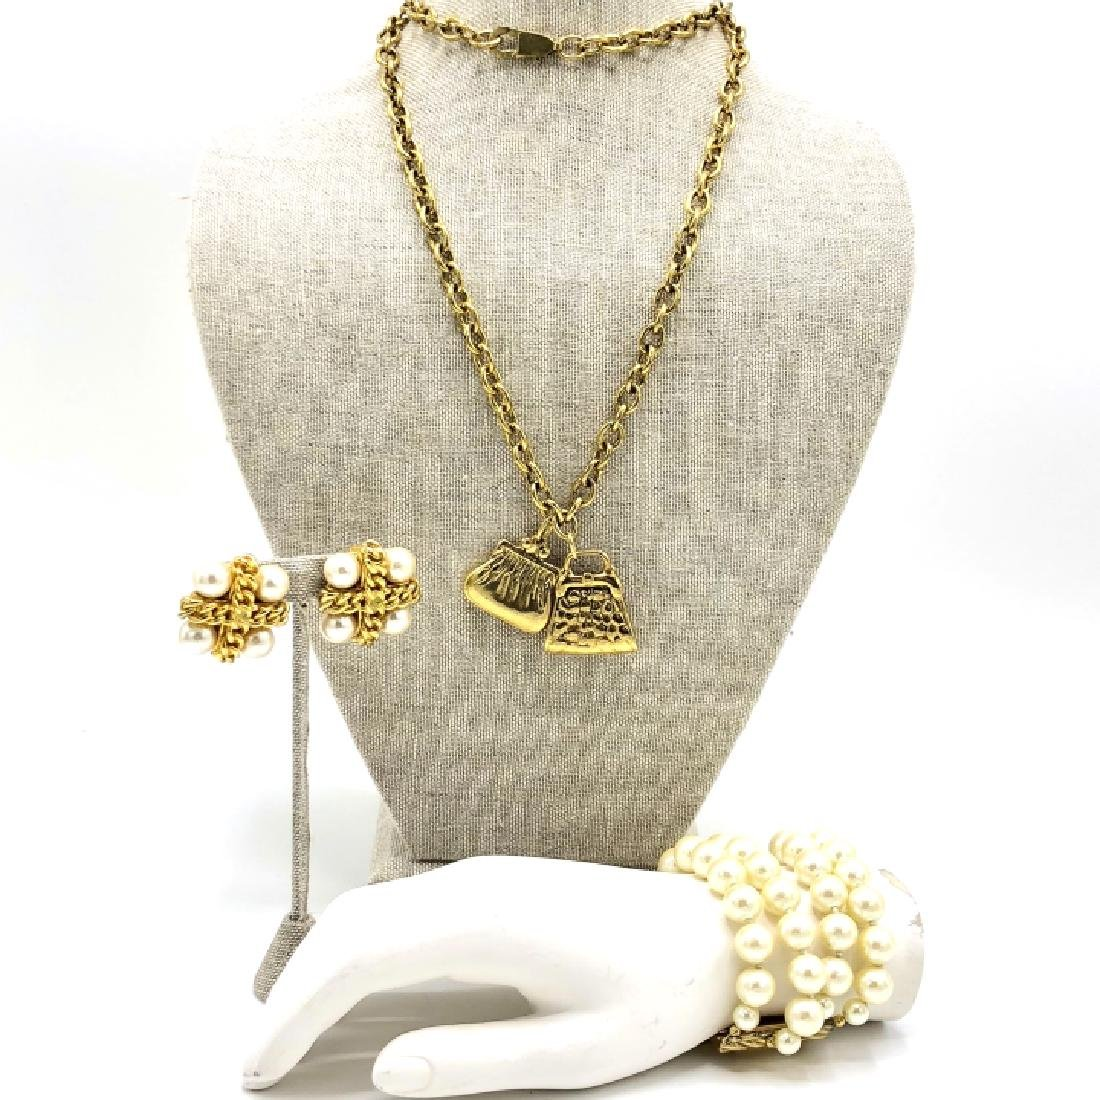 Vintage 80s Costume Chanel Style Jewelry Set - 2